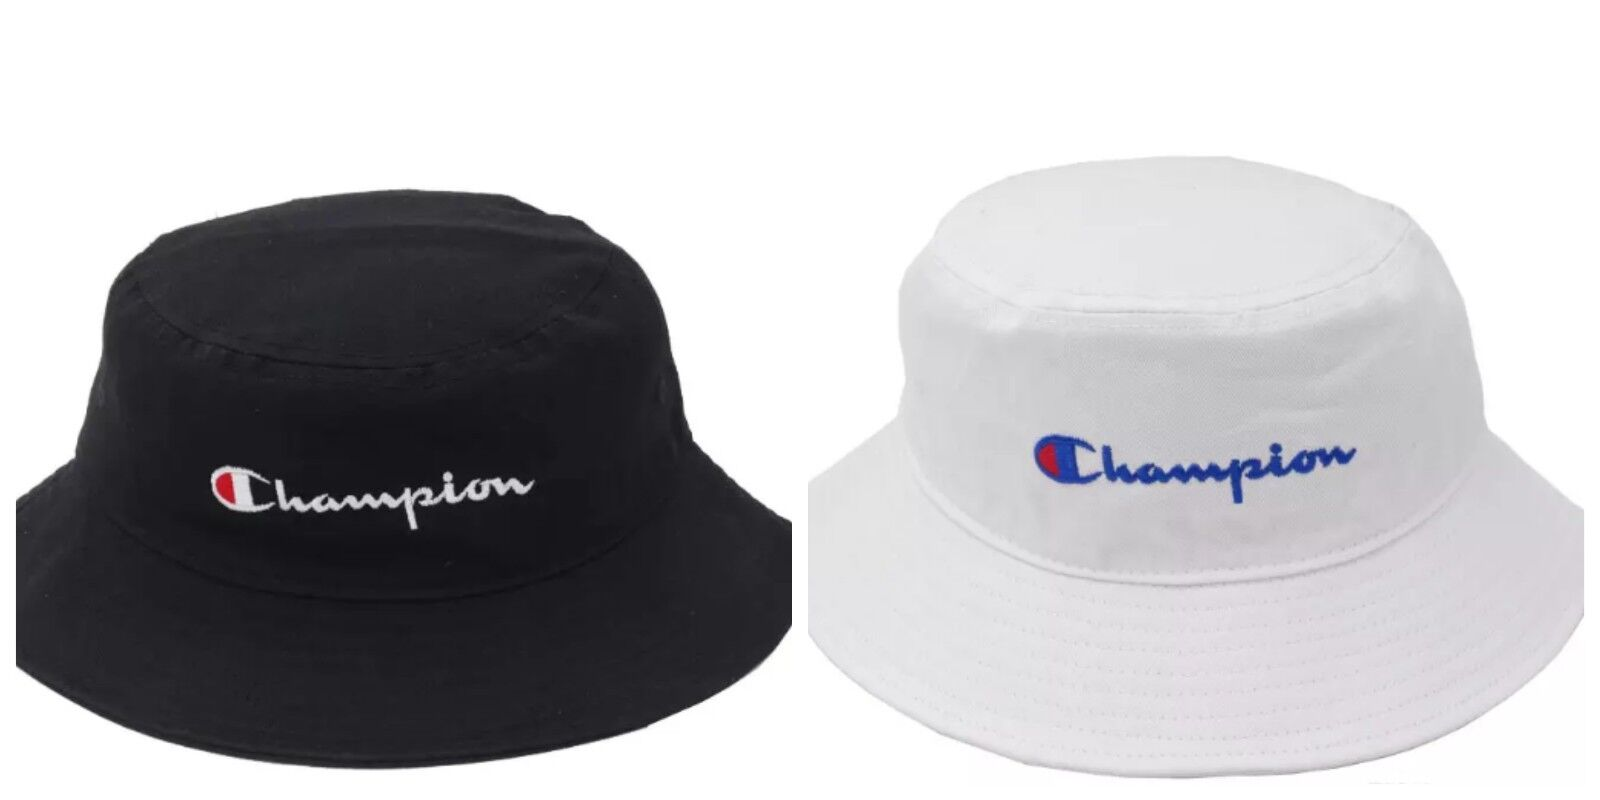 f51d8409 ... clearance 2018 champion bucket cap hat black white snapback free size  adjustable new 5333d 0e679